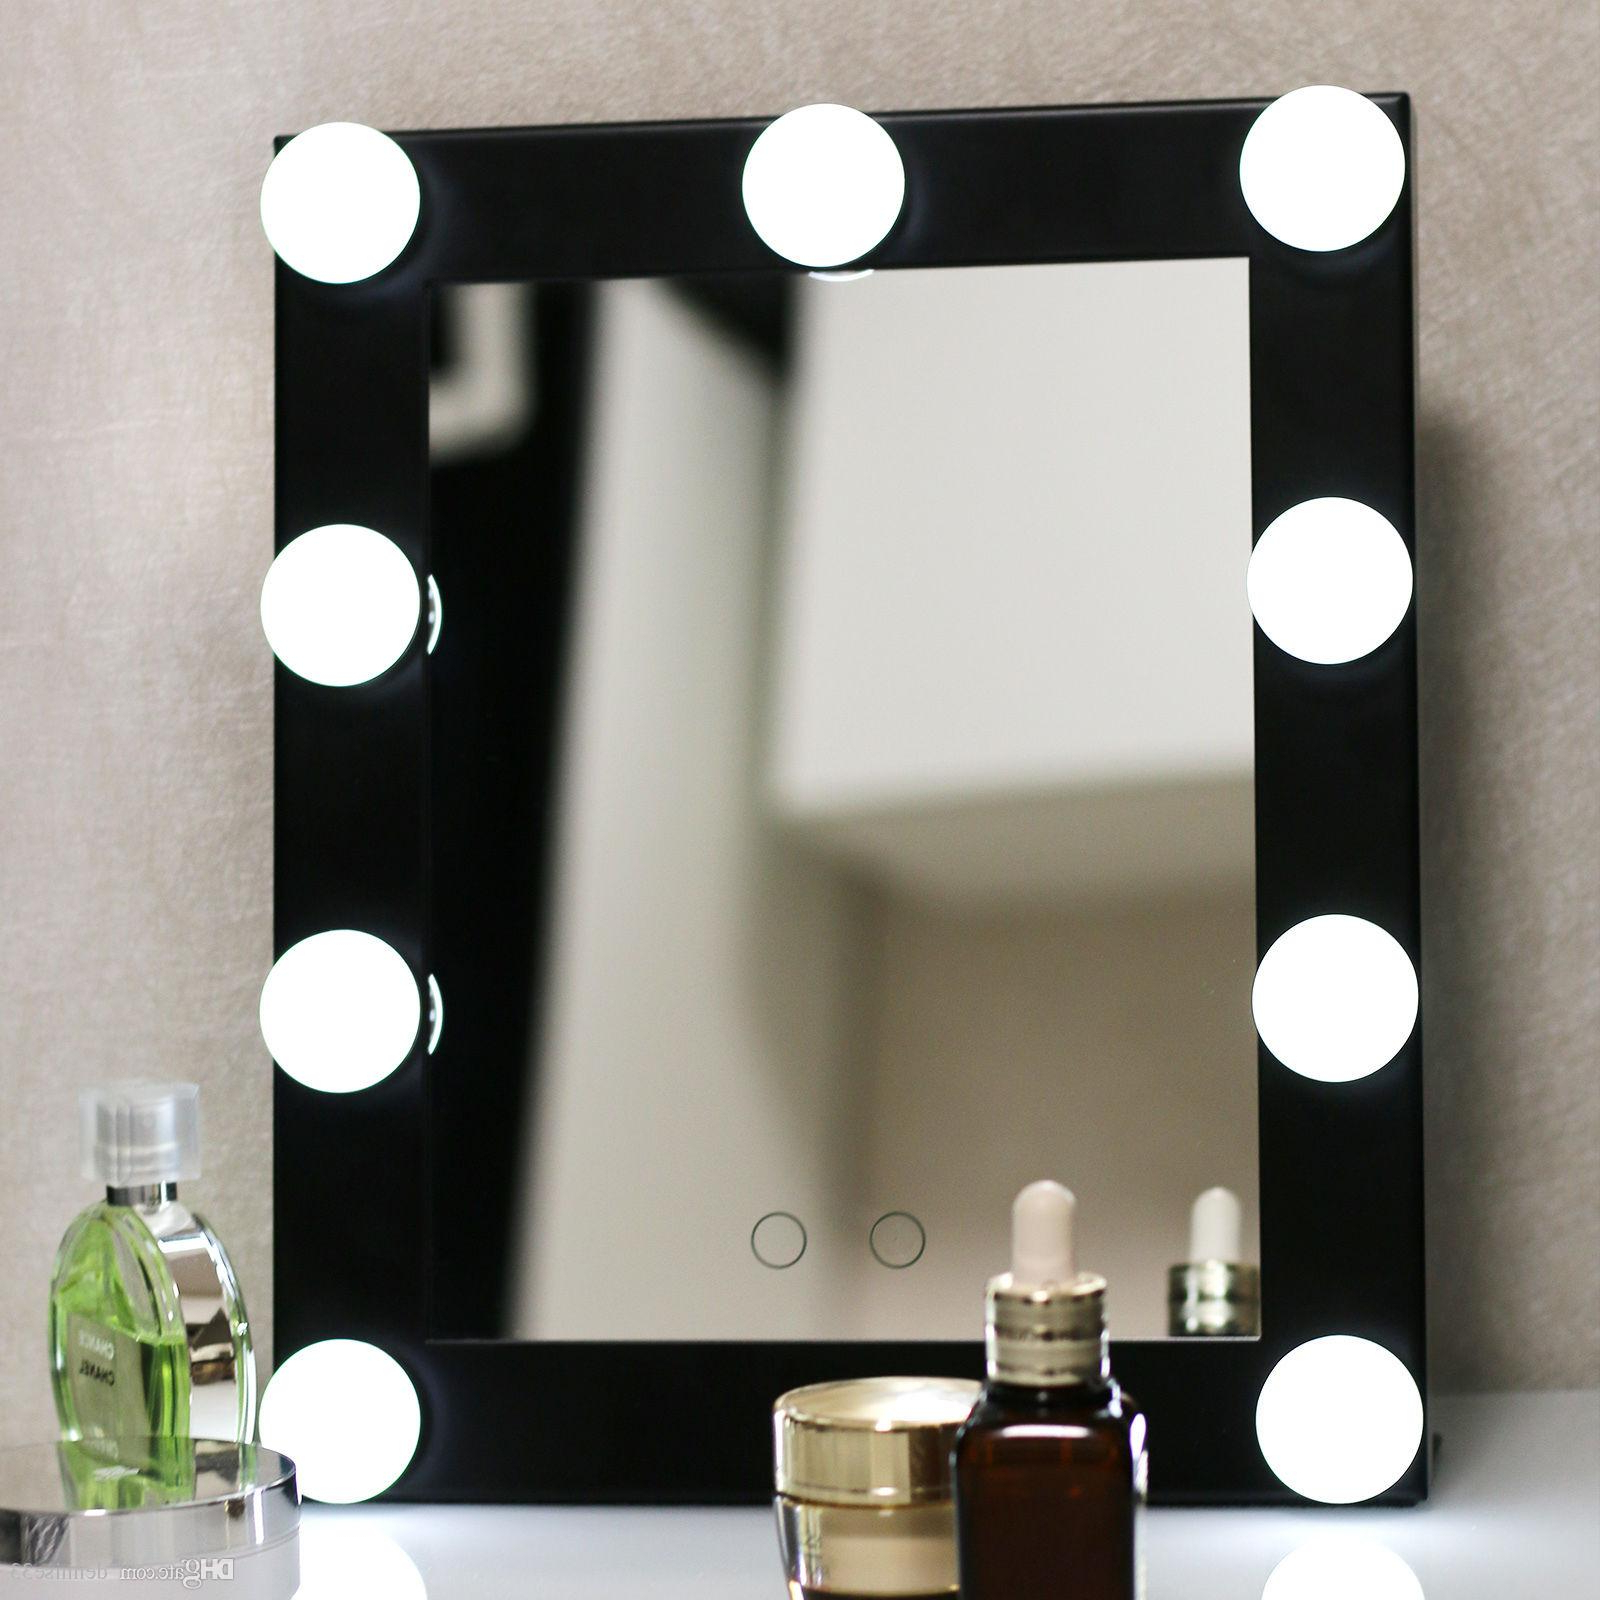 Salon Wall Mirrors In Preferred Free Shipping Hollywood Lighted Aluminum Table Desktop Wall Mounted  Cosmetic Makeup Artist Salon Vanity Girl Mirror With Lights Bulbs Around (View 2 of 20)